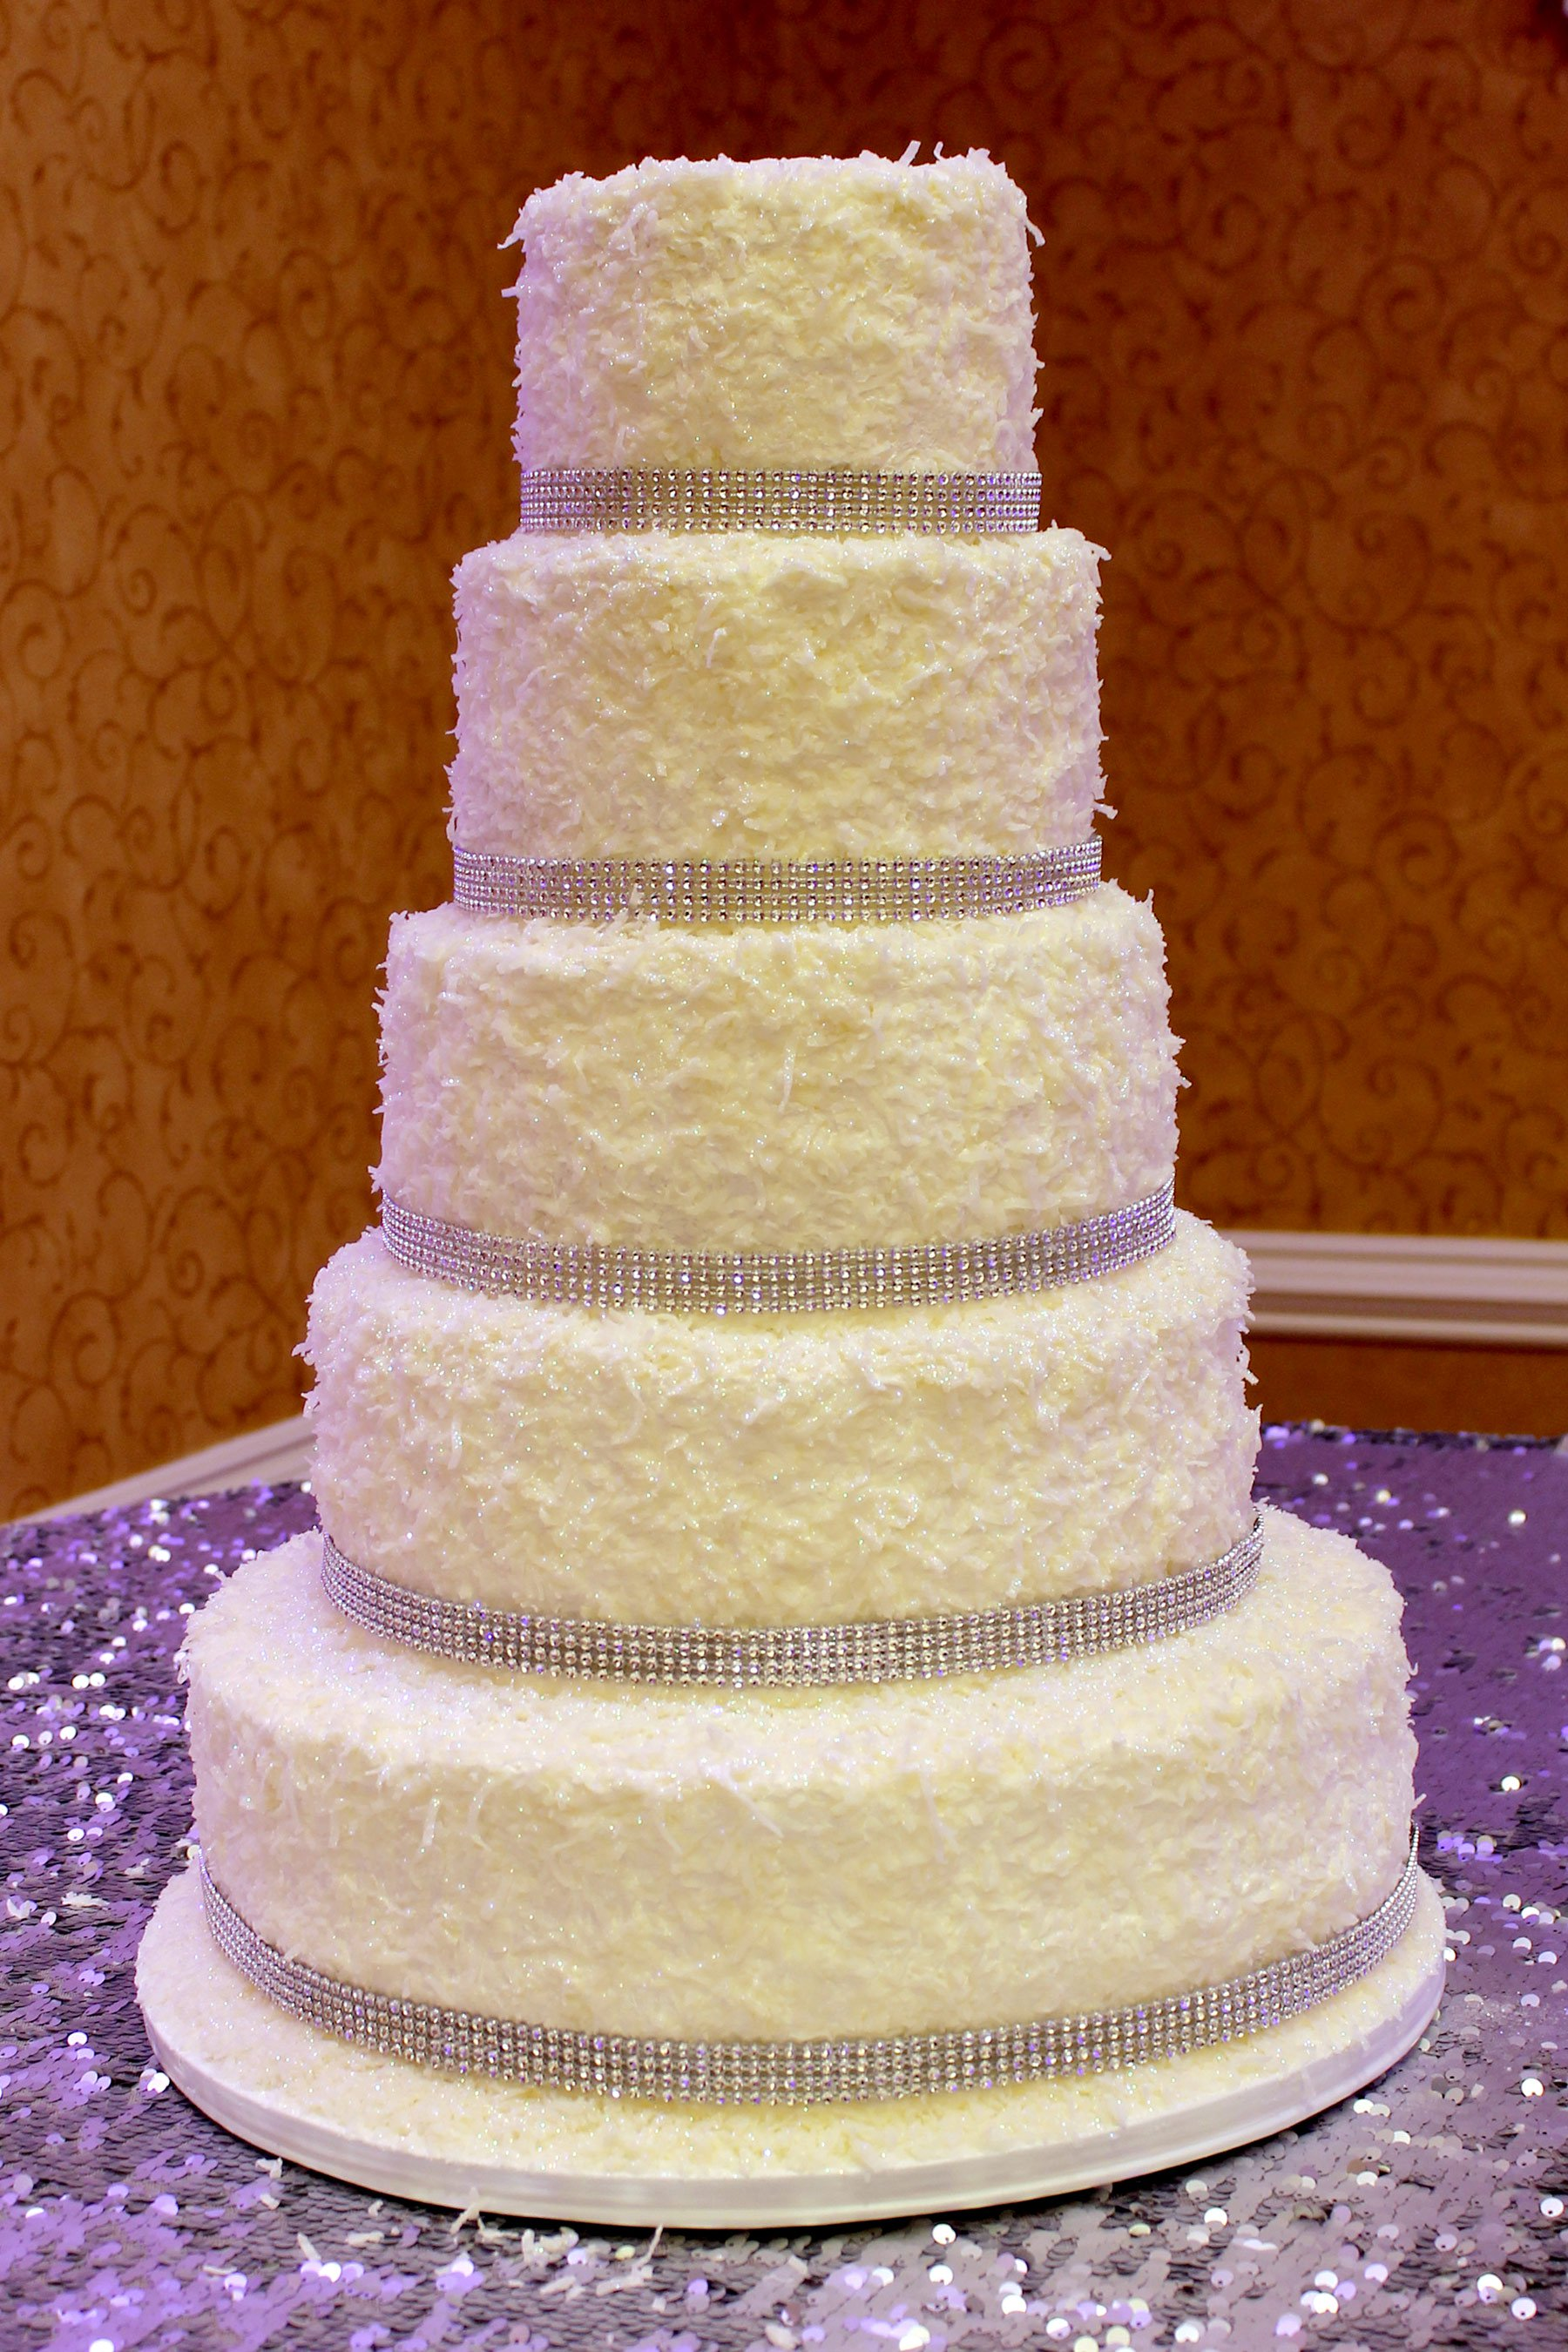 The Wedding Cakes